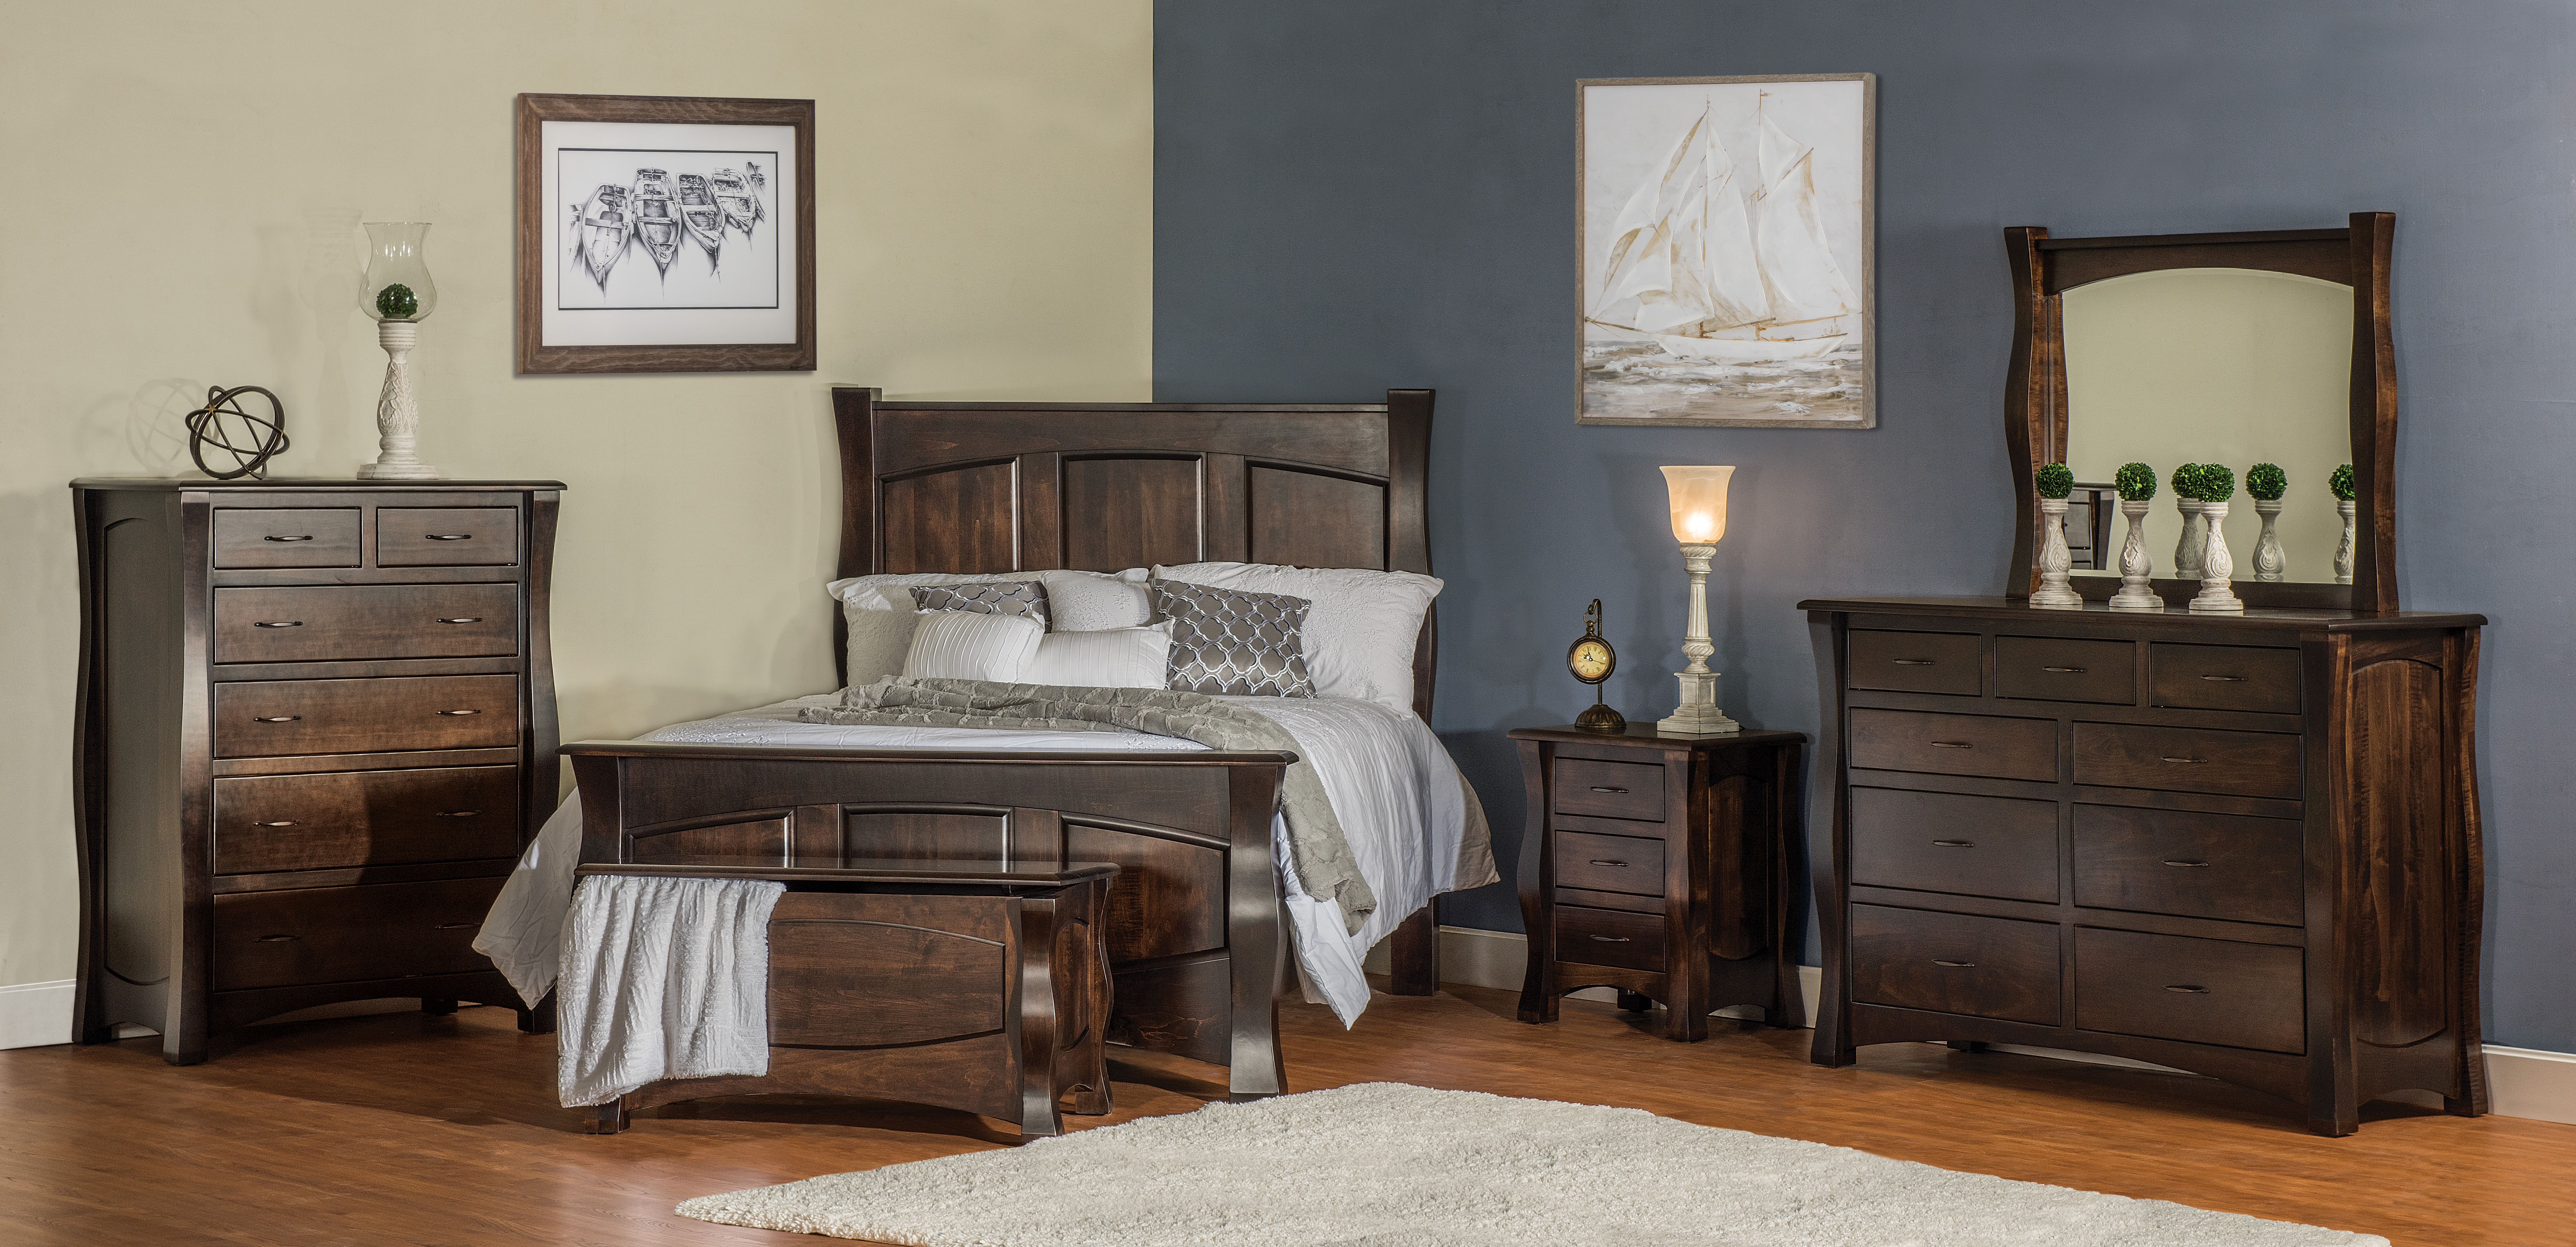 Reno Bedroom Suite Product